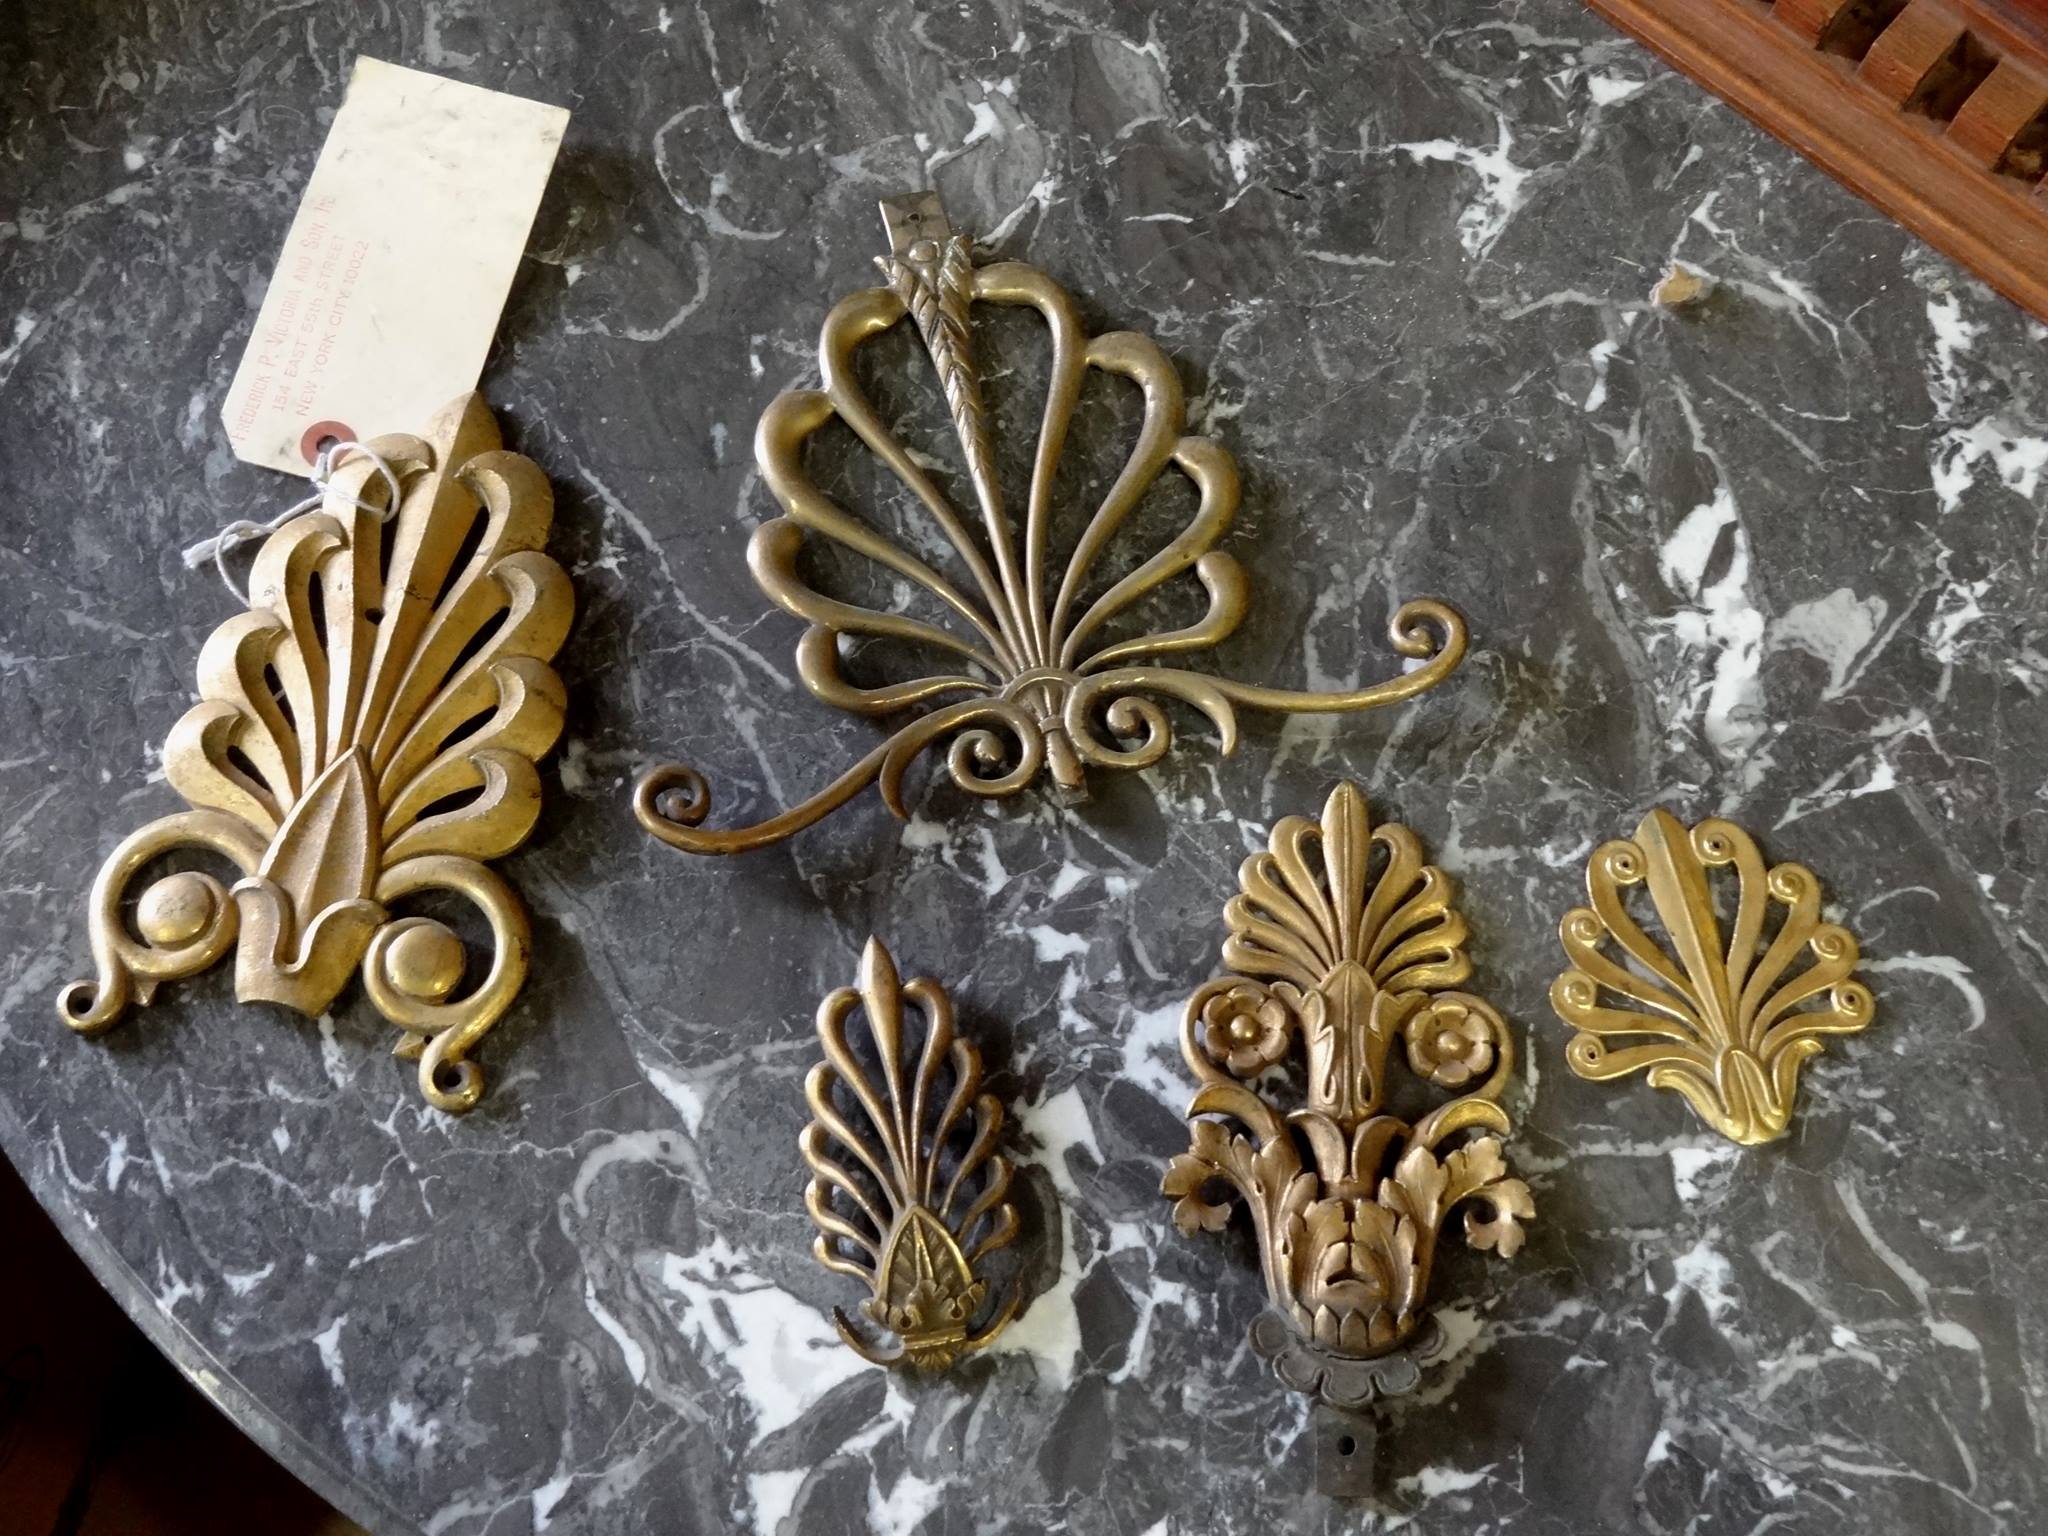 Some brass anthemion from our collection of mounts which we used as inspiration for our anthemion design